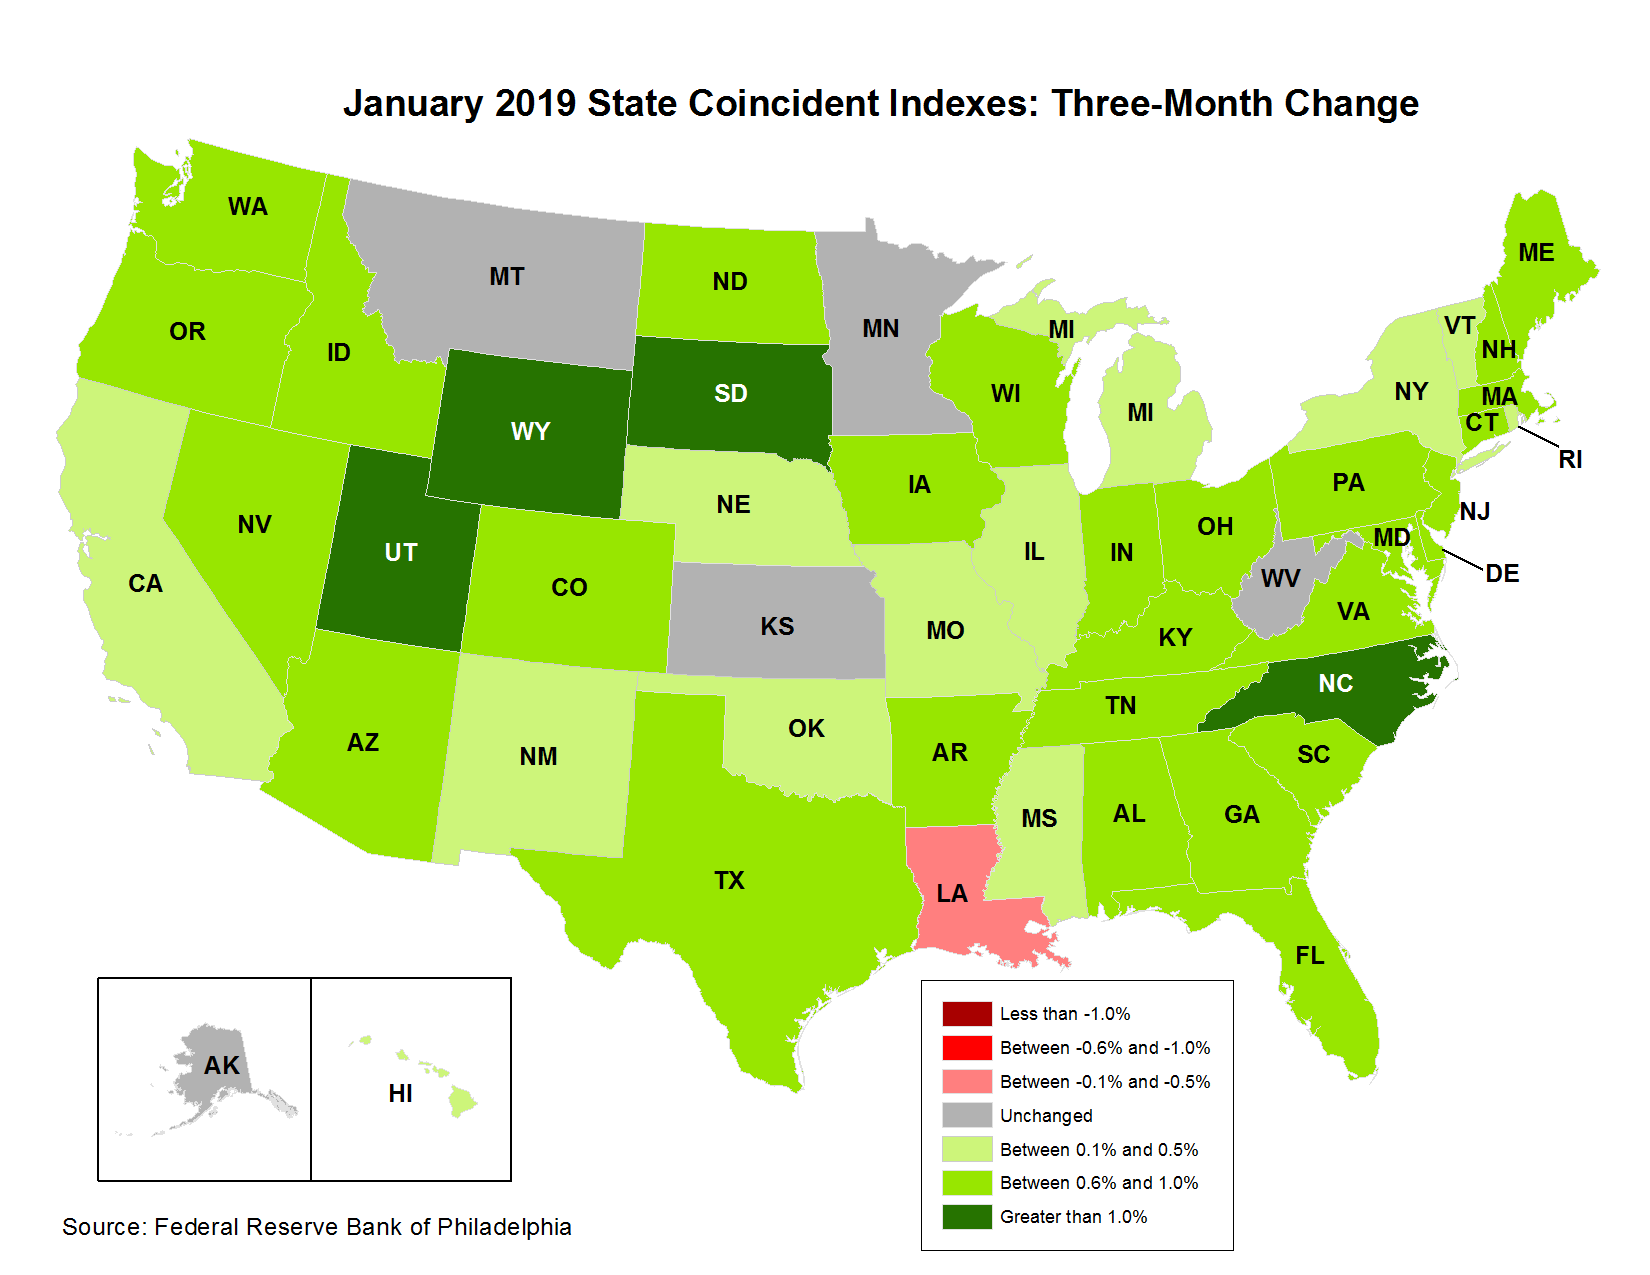 Map of the U.S. showing the State Coincident Indexes Three-Month Change in January 2019